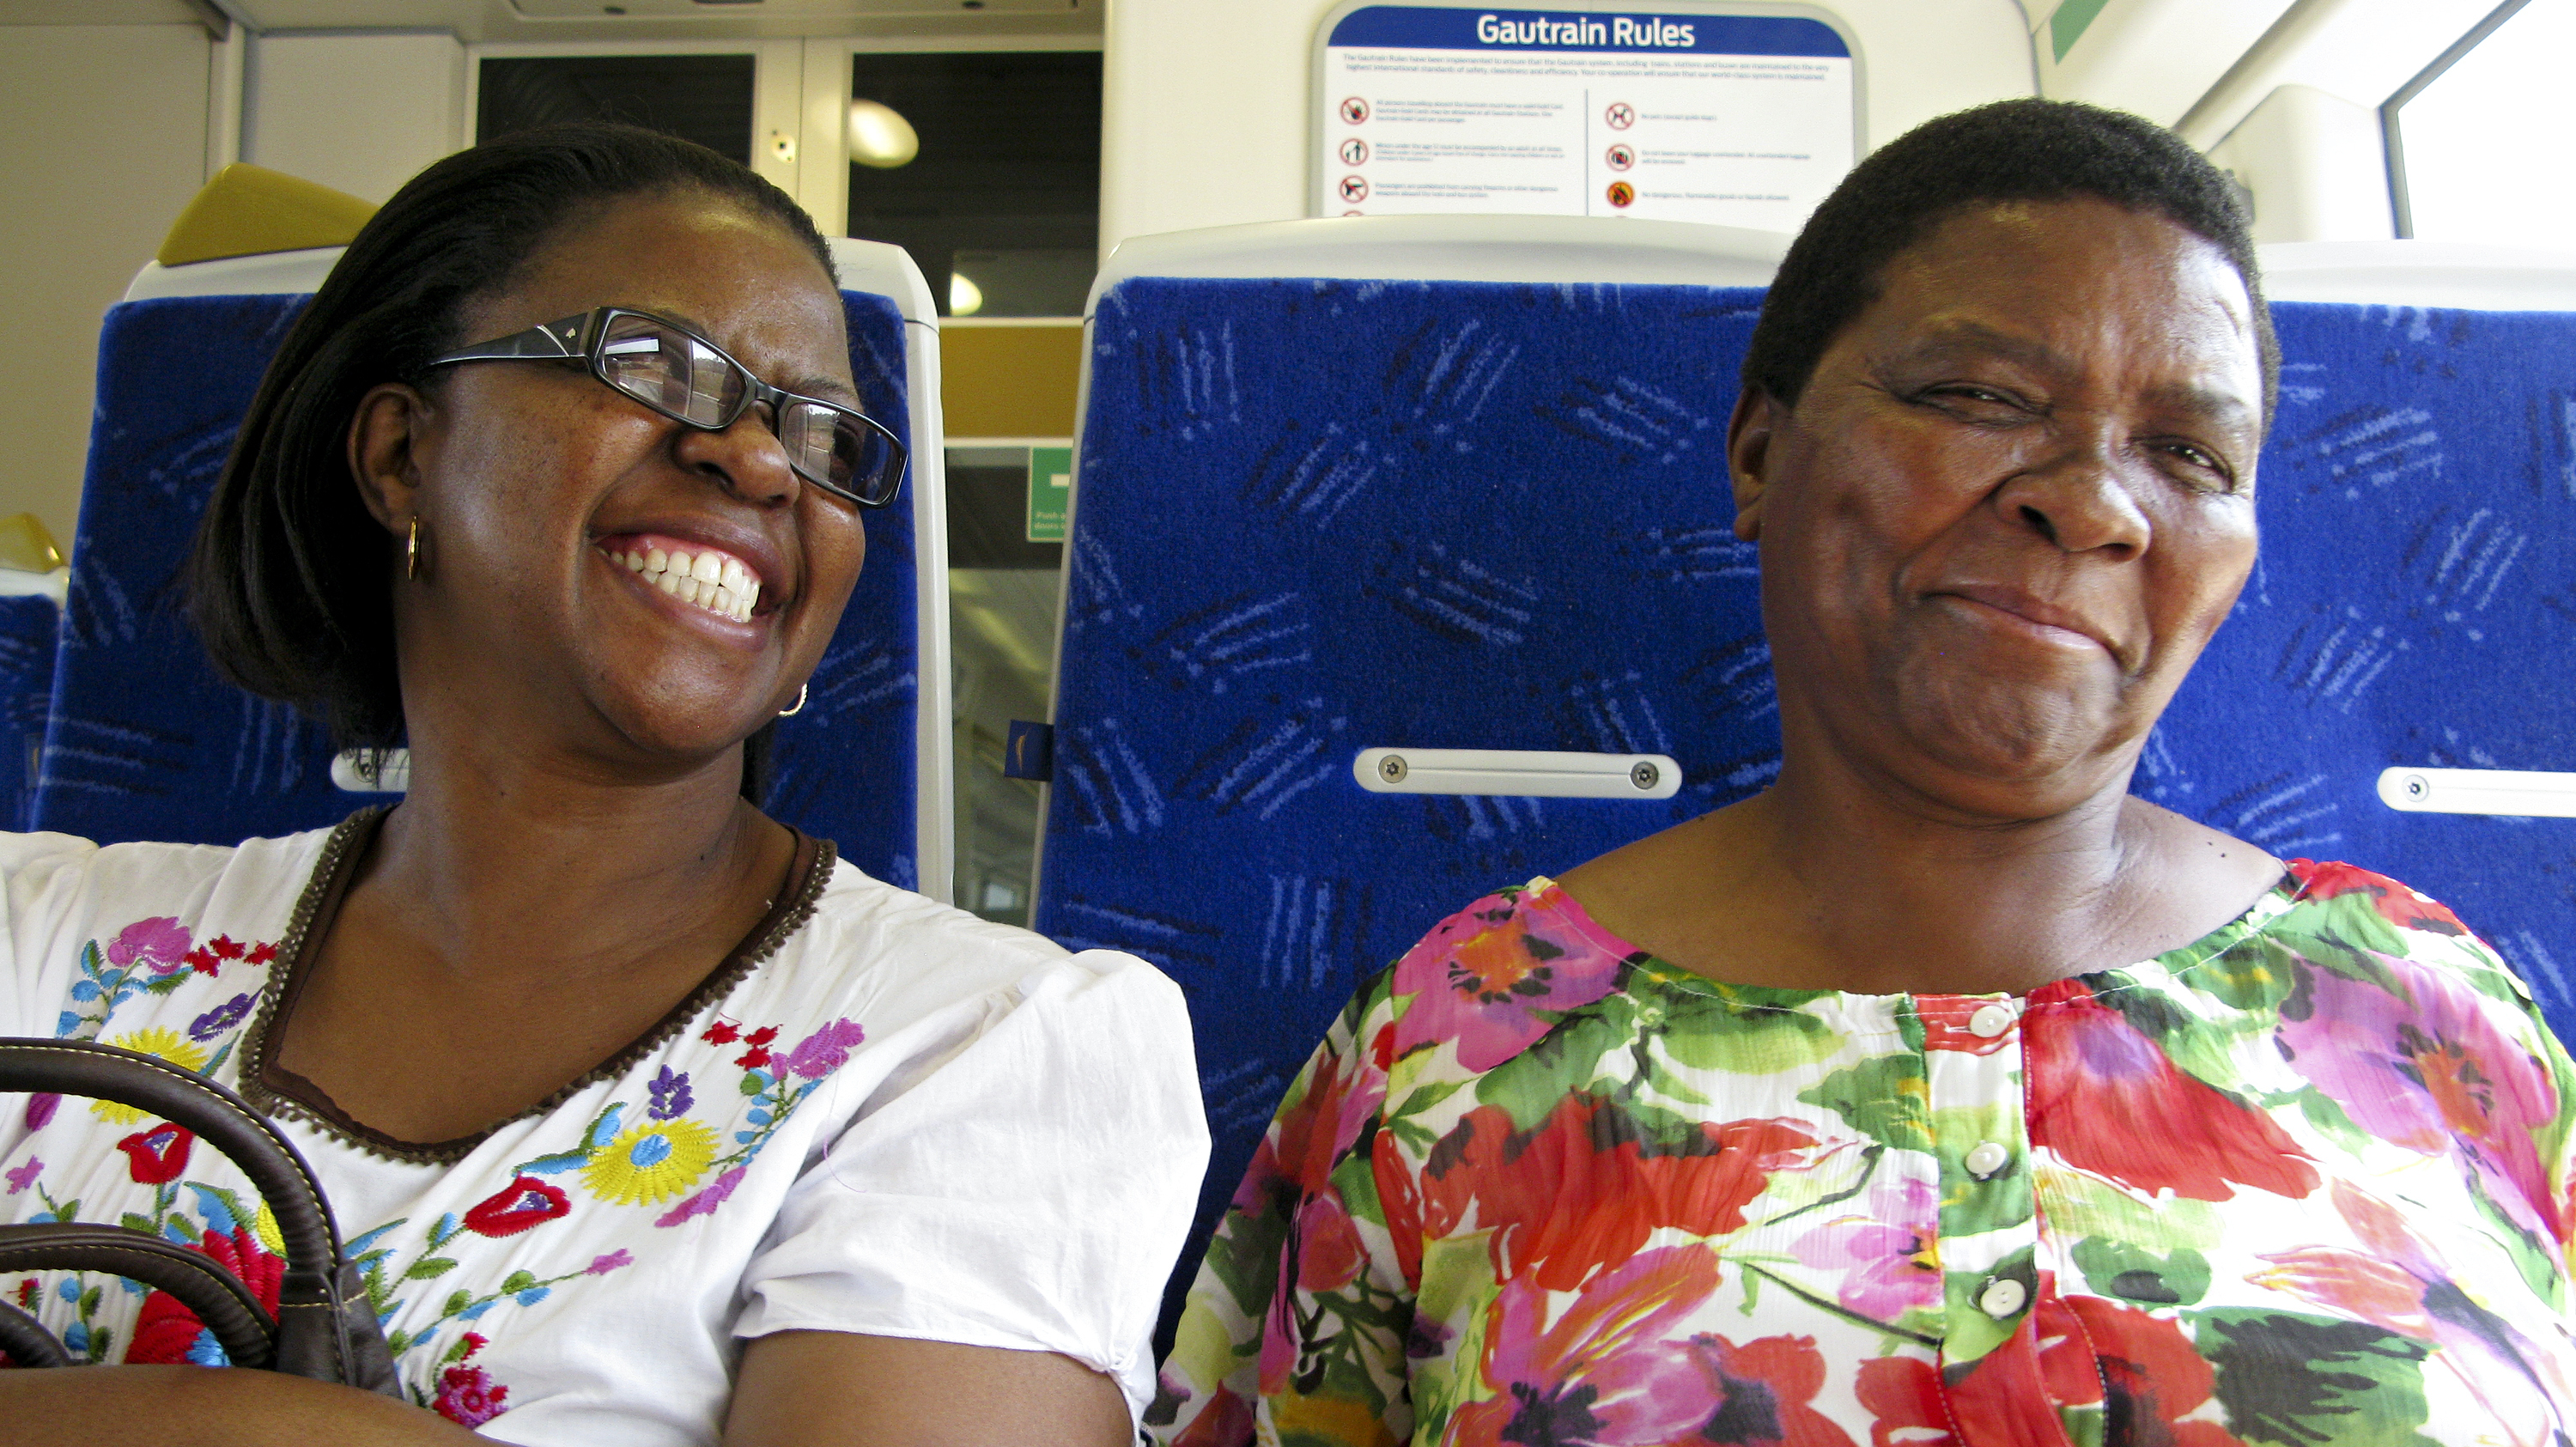 Refilwe Edith Seabi (left) and her sister Girlie are taking the Gautrain from Pretoria to go shopping in Johannesburg. Seabi is pleased when the ride clocks in at 30 minutes -- compared with a drive that sometimes takes her two hours.